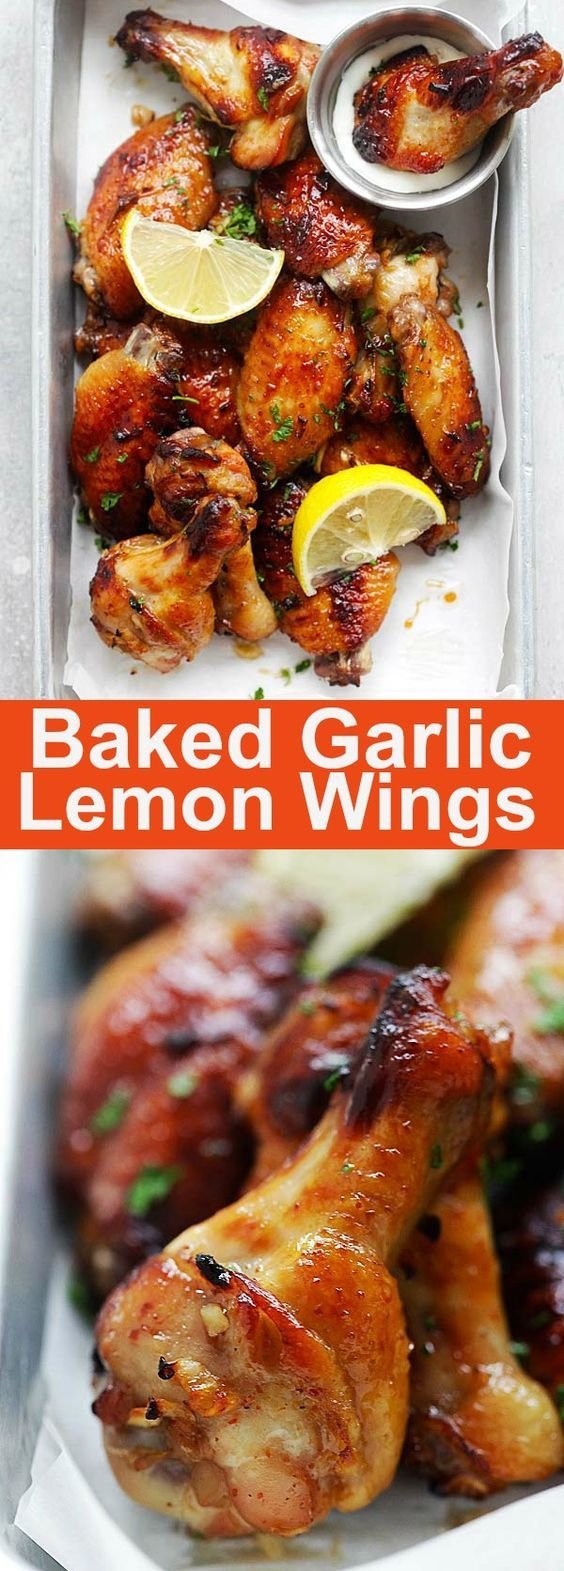 Baked Garlic Lemon Wings - easiest and best baked chicken wings that takes 10 mins active time. So delicious, garlicky and lemony | rasamalaysia.com